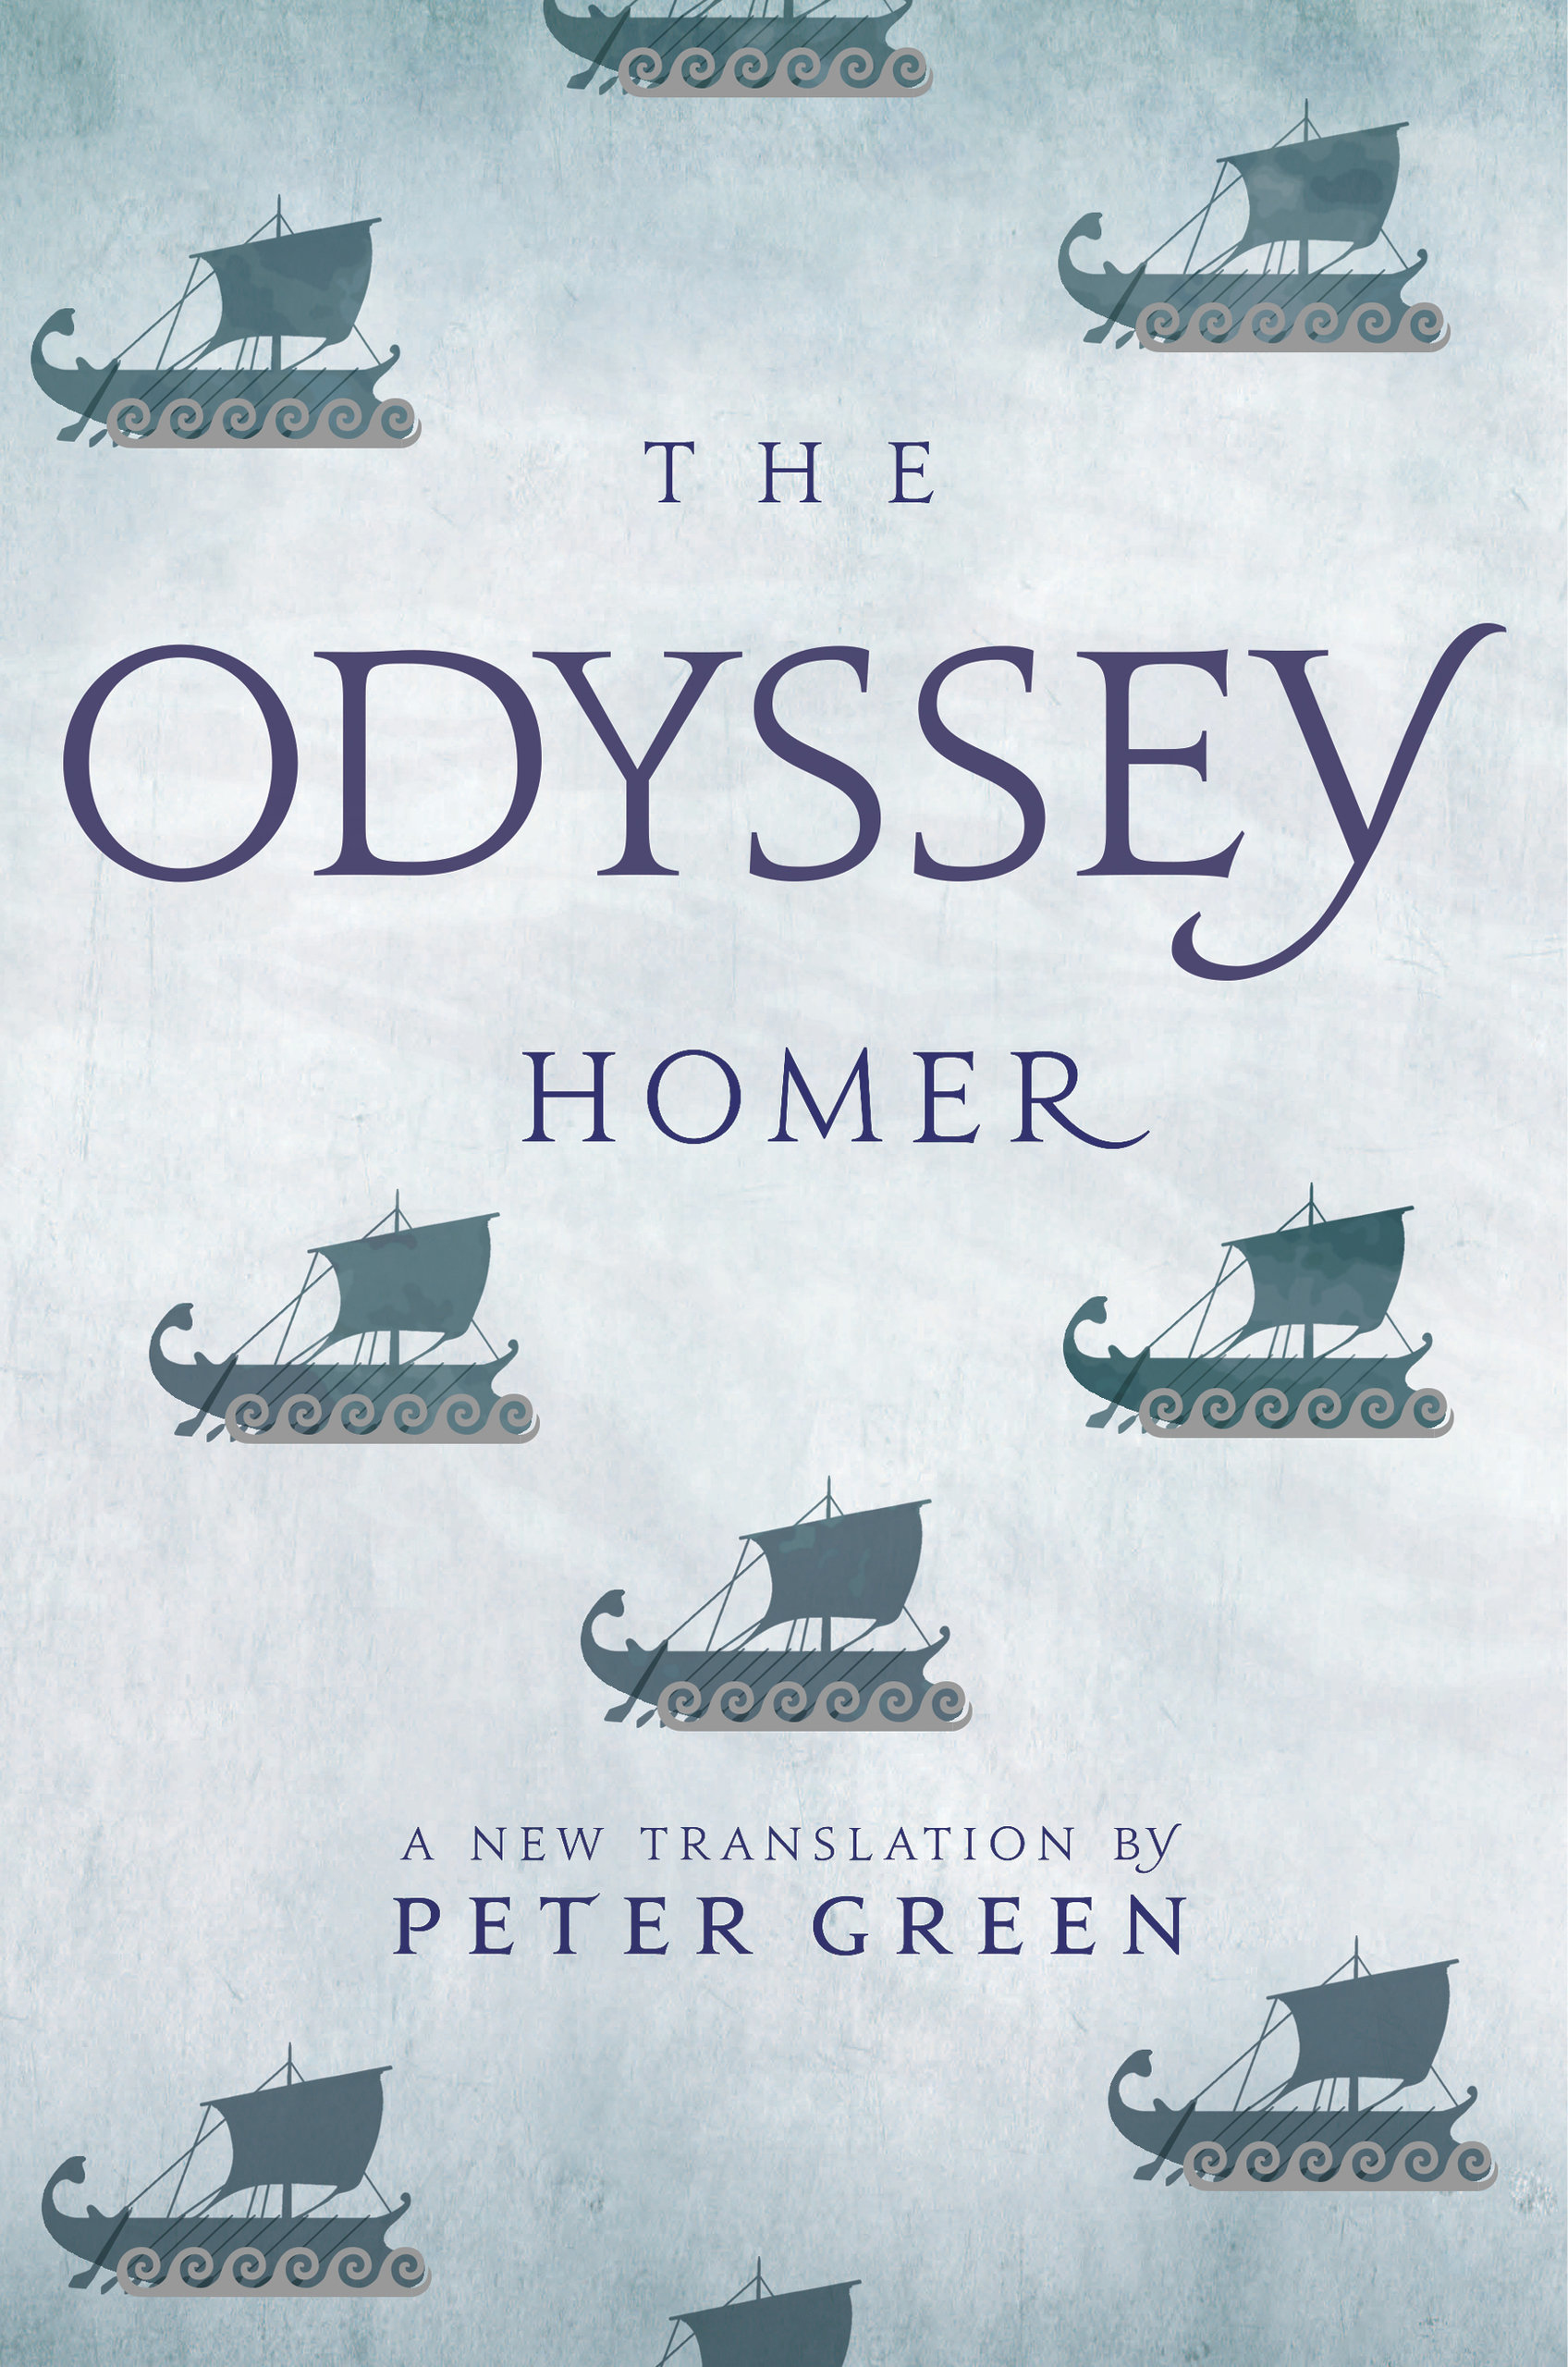 The Odyssey A New Translation by Peter Green